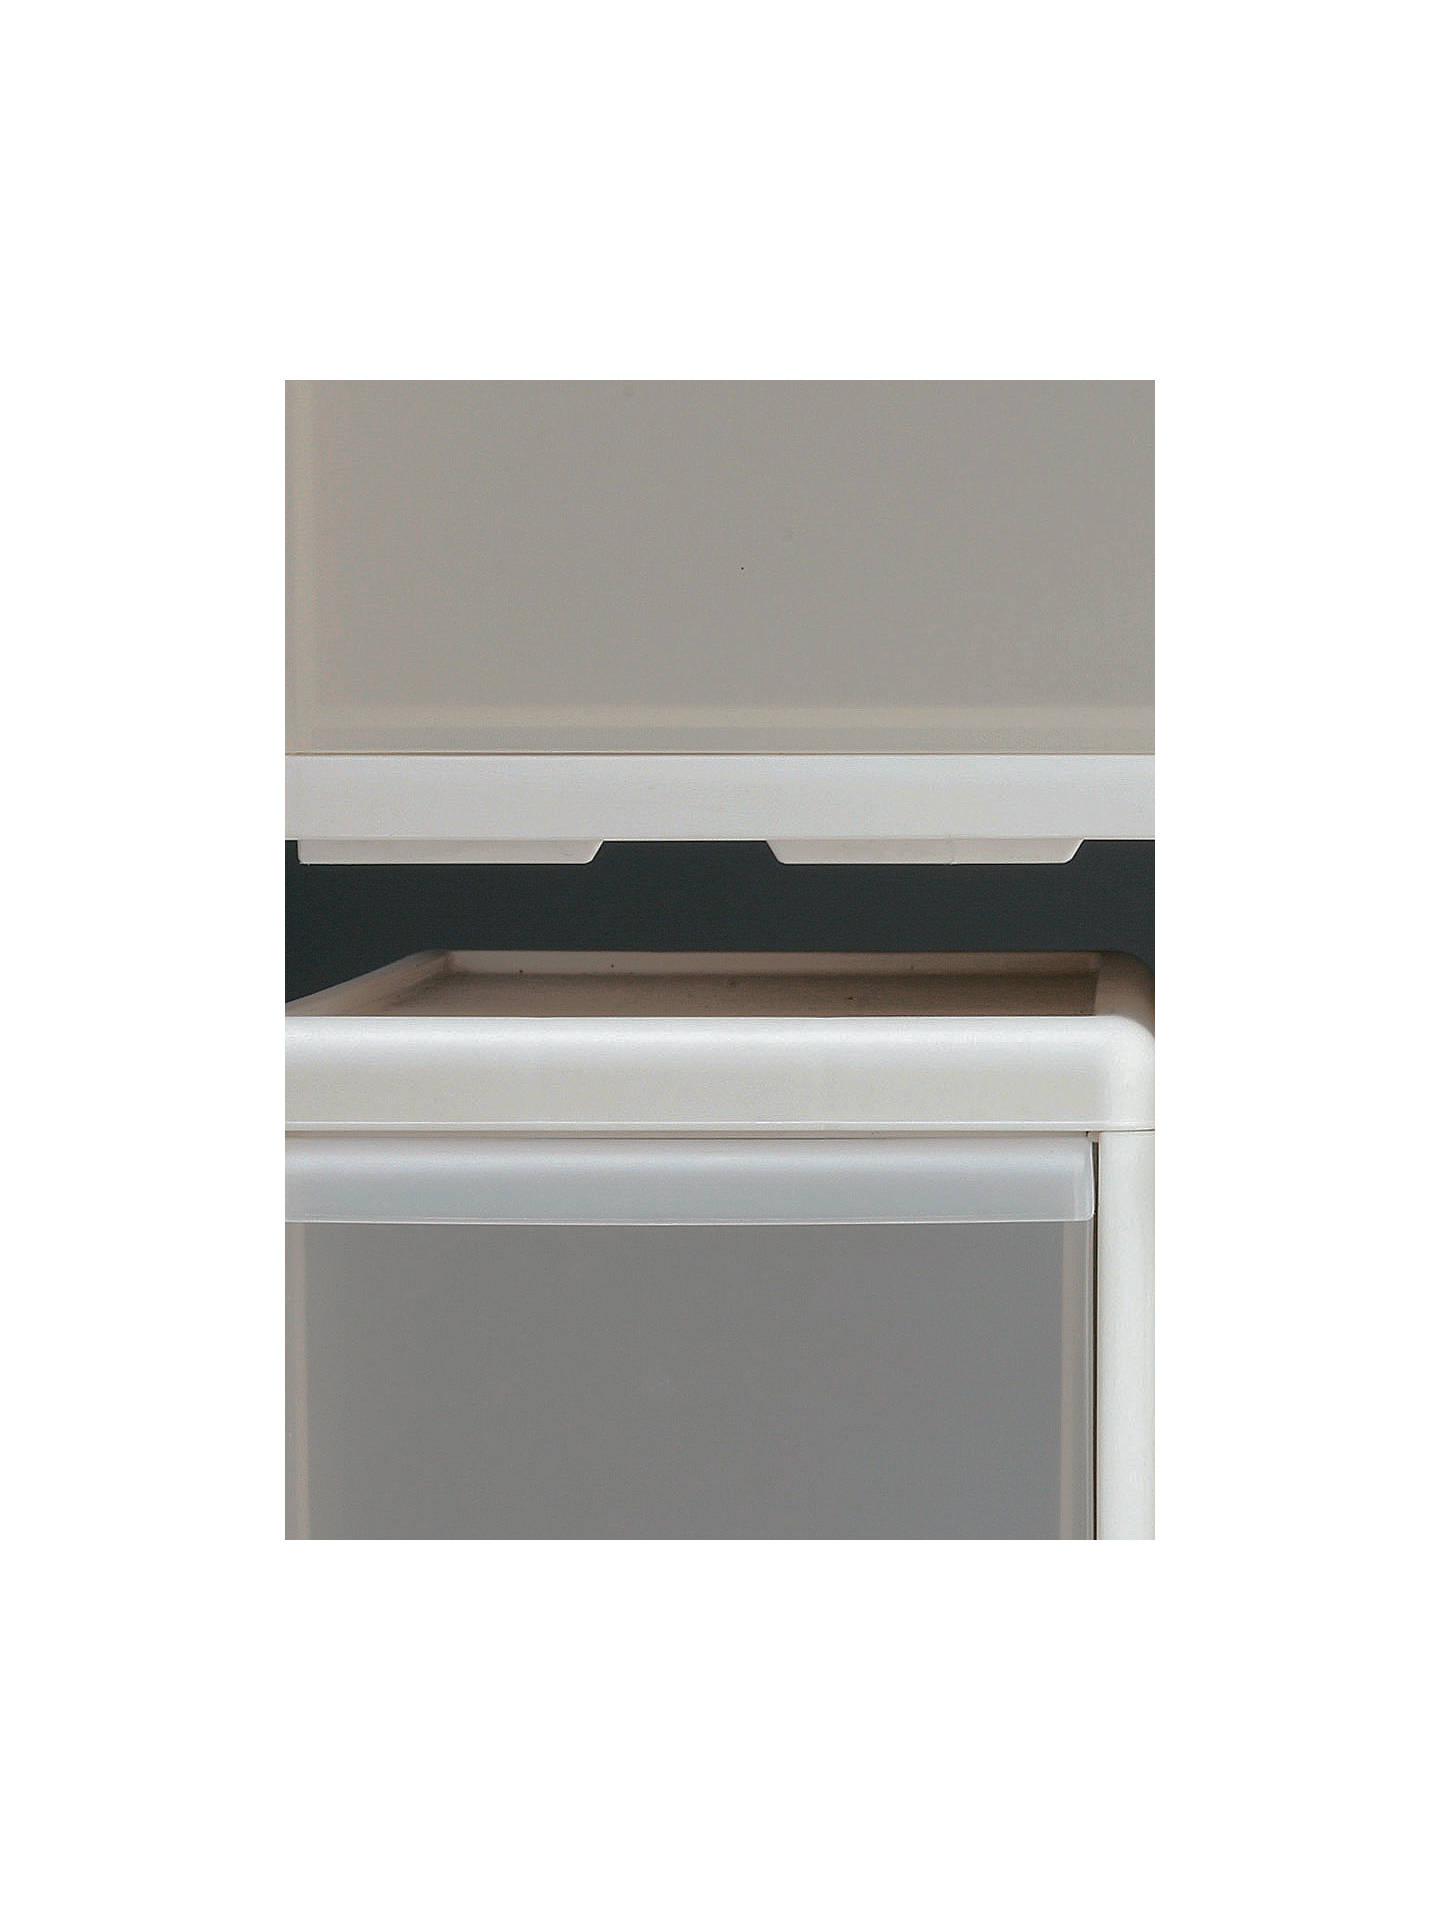 Buylike-it Unicom Storage Drawer, Large, W25.5cm Online at johnlewis.com